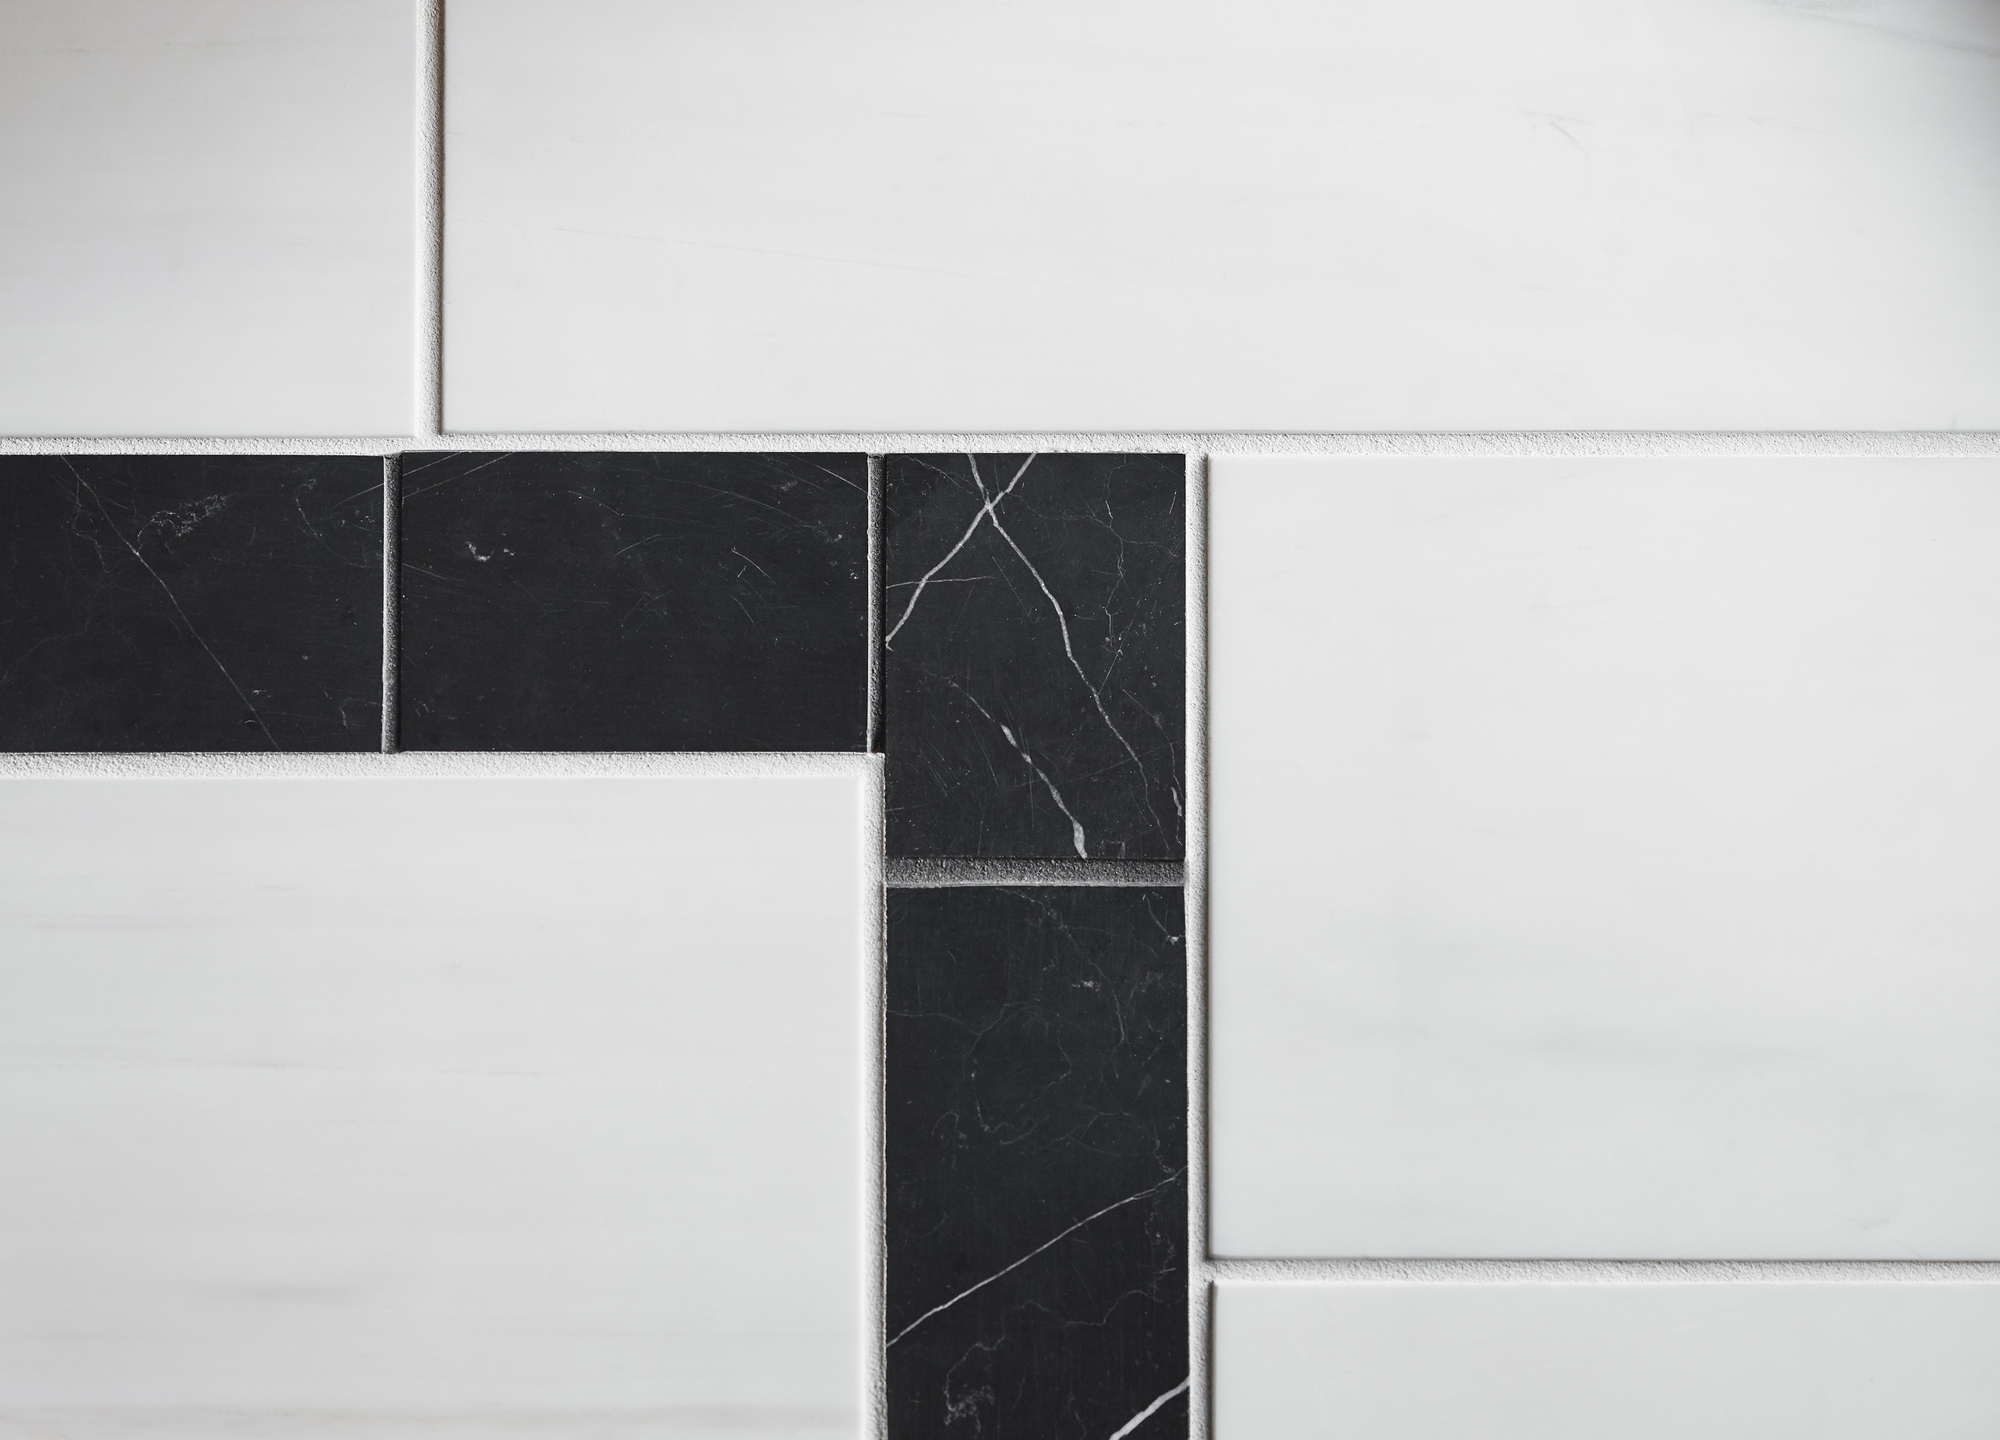 Nero Marquina     Dolomite Corina     A border of Nero Marquina marble set within Dolomite tile is just one more nod to traditional architecture.